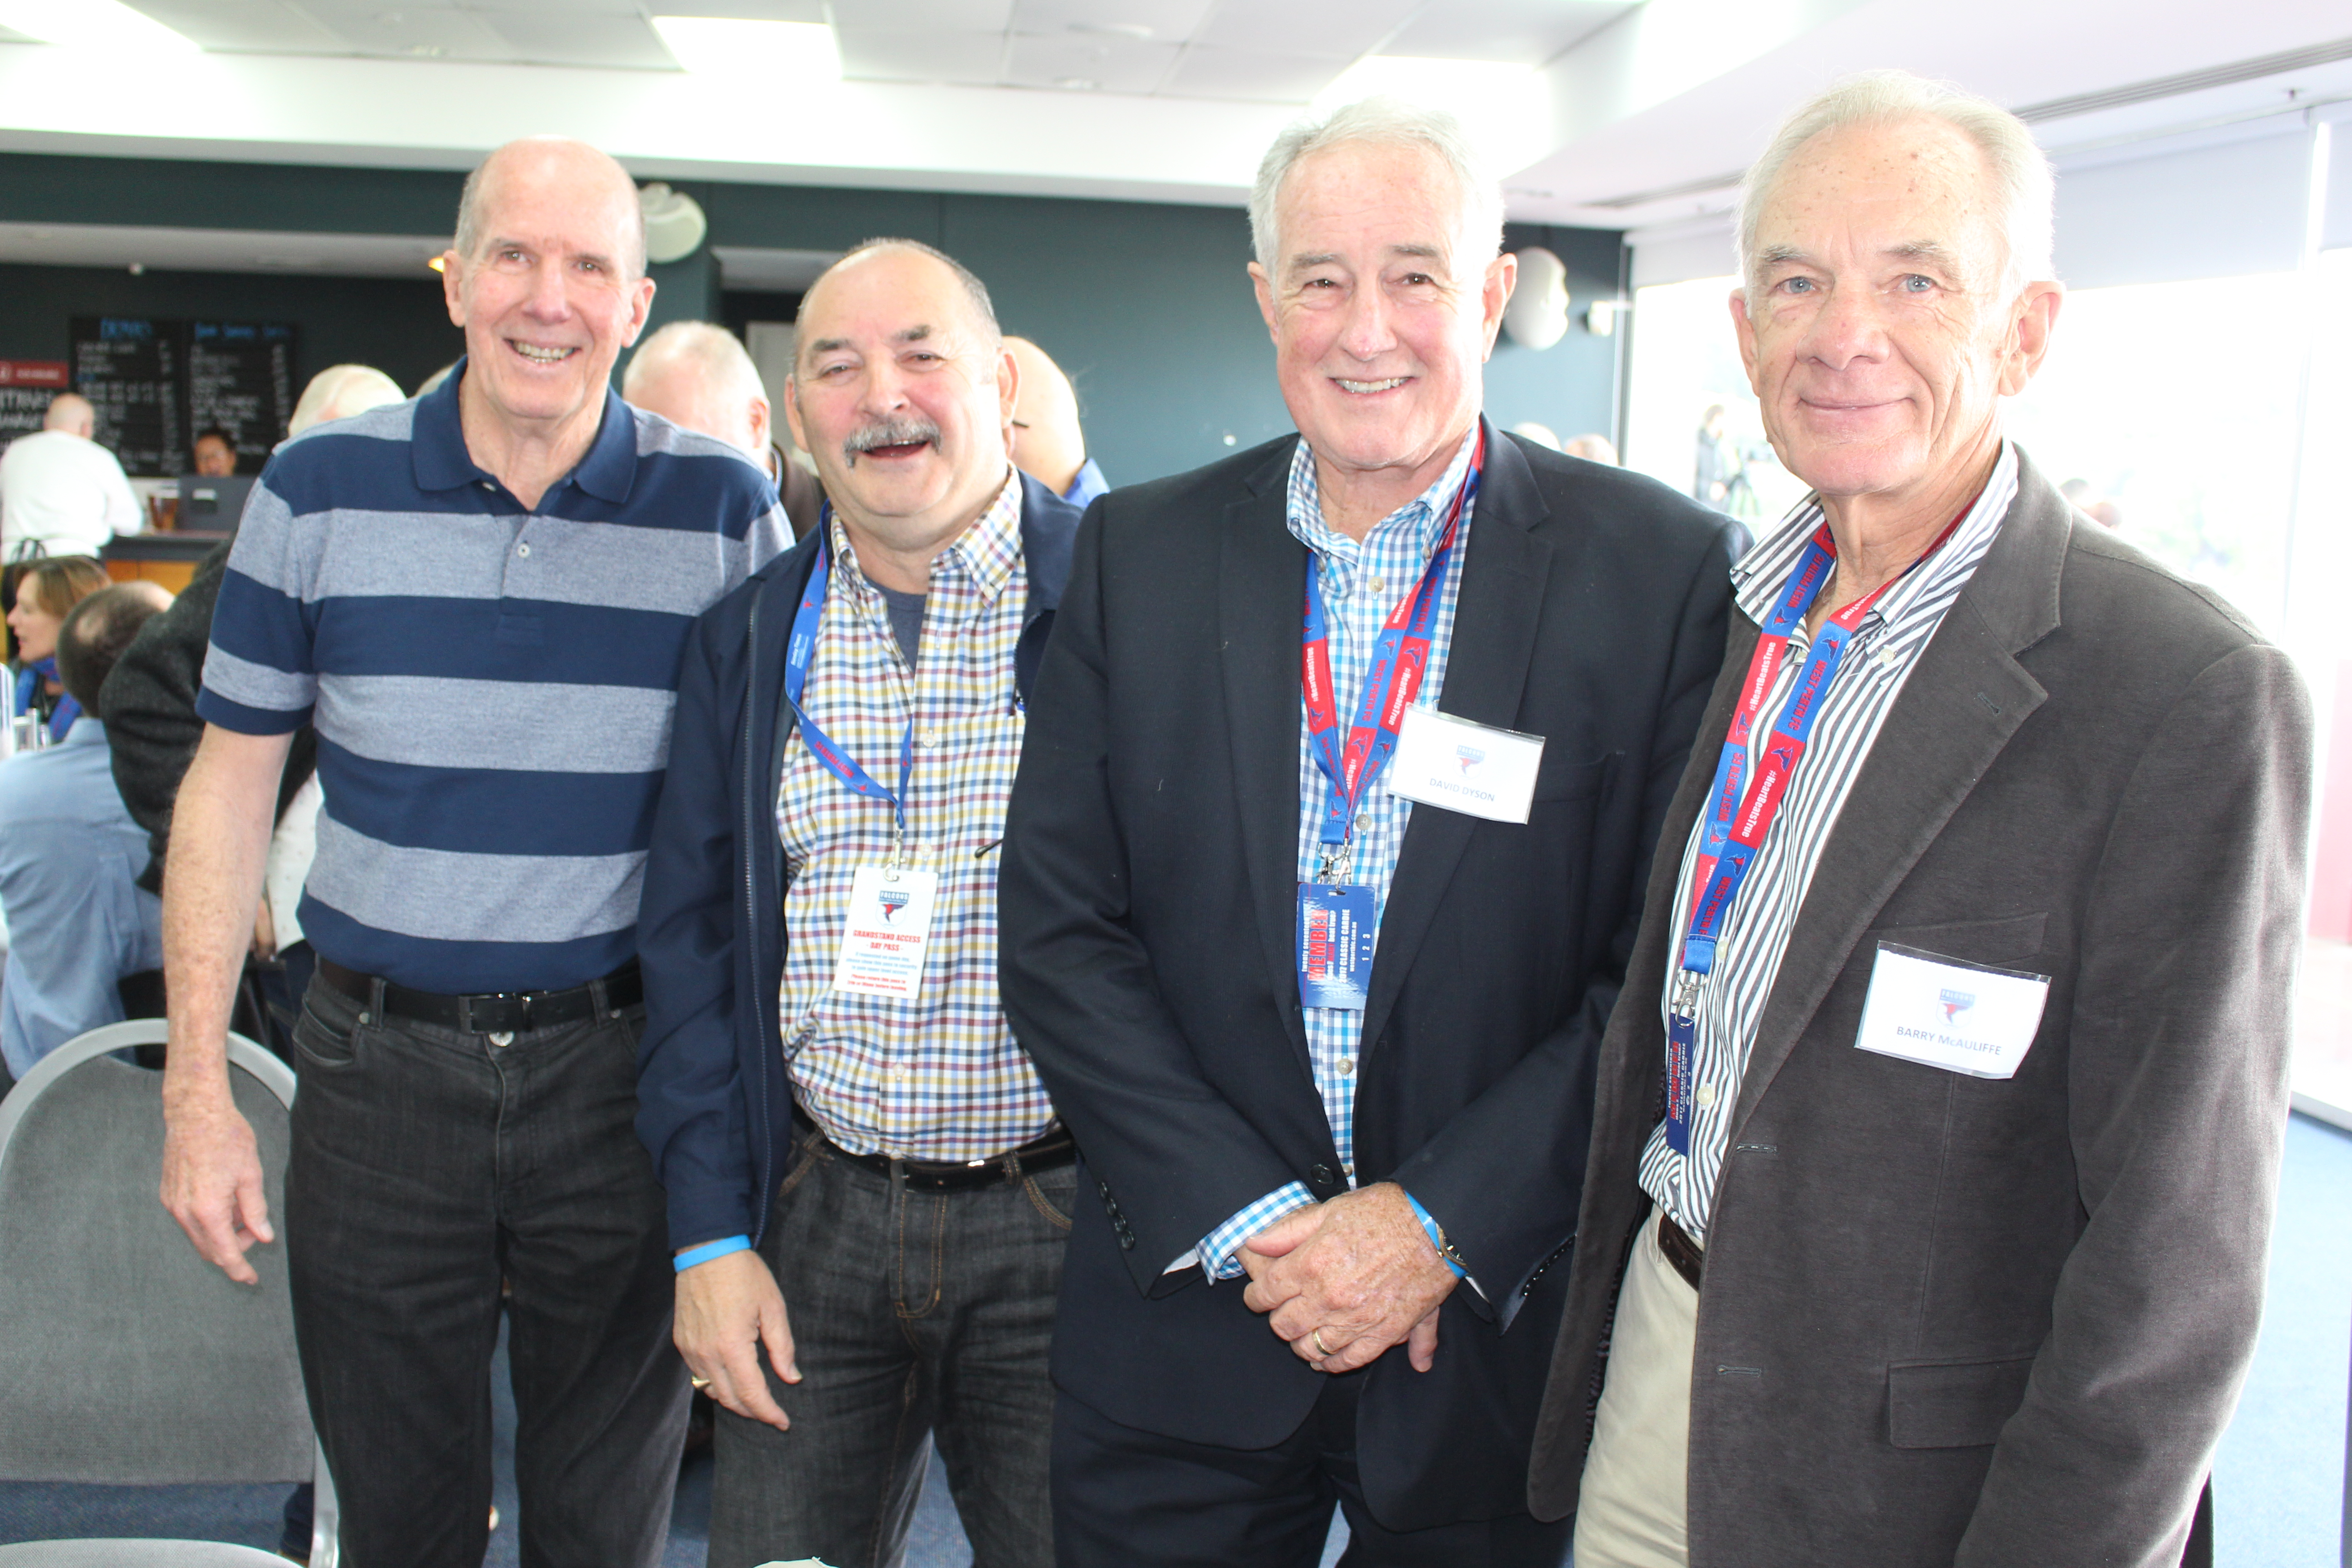 Bill Spittles, Terry Stokesbury, David Dyson and Barry McAuliffe.